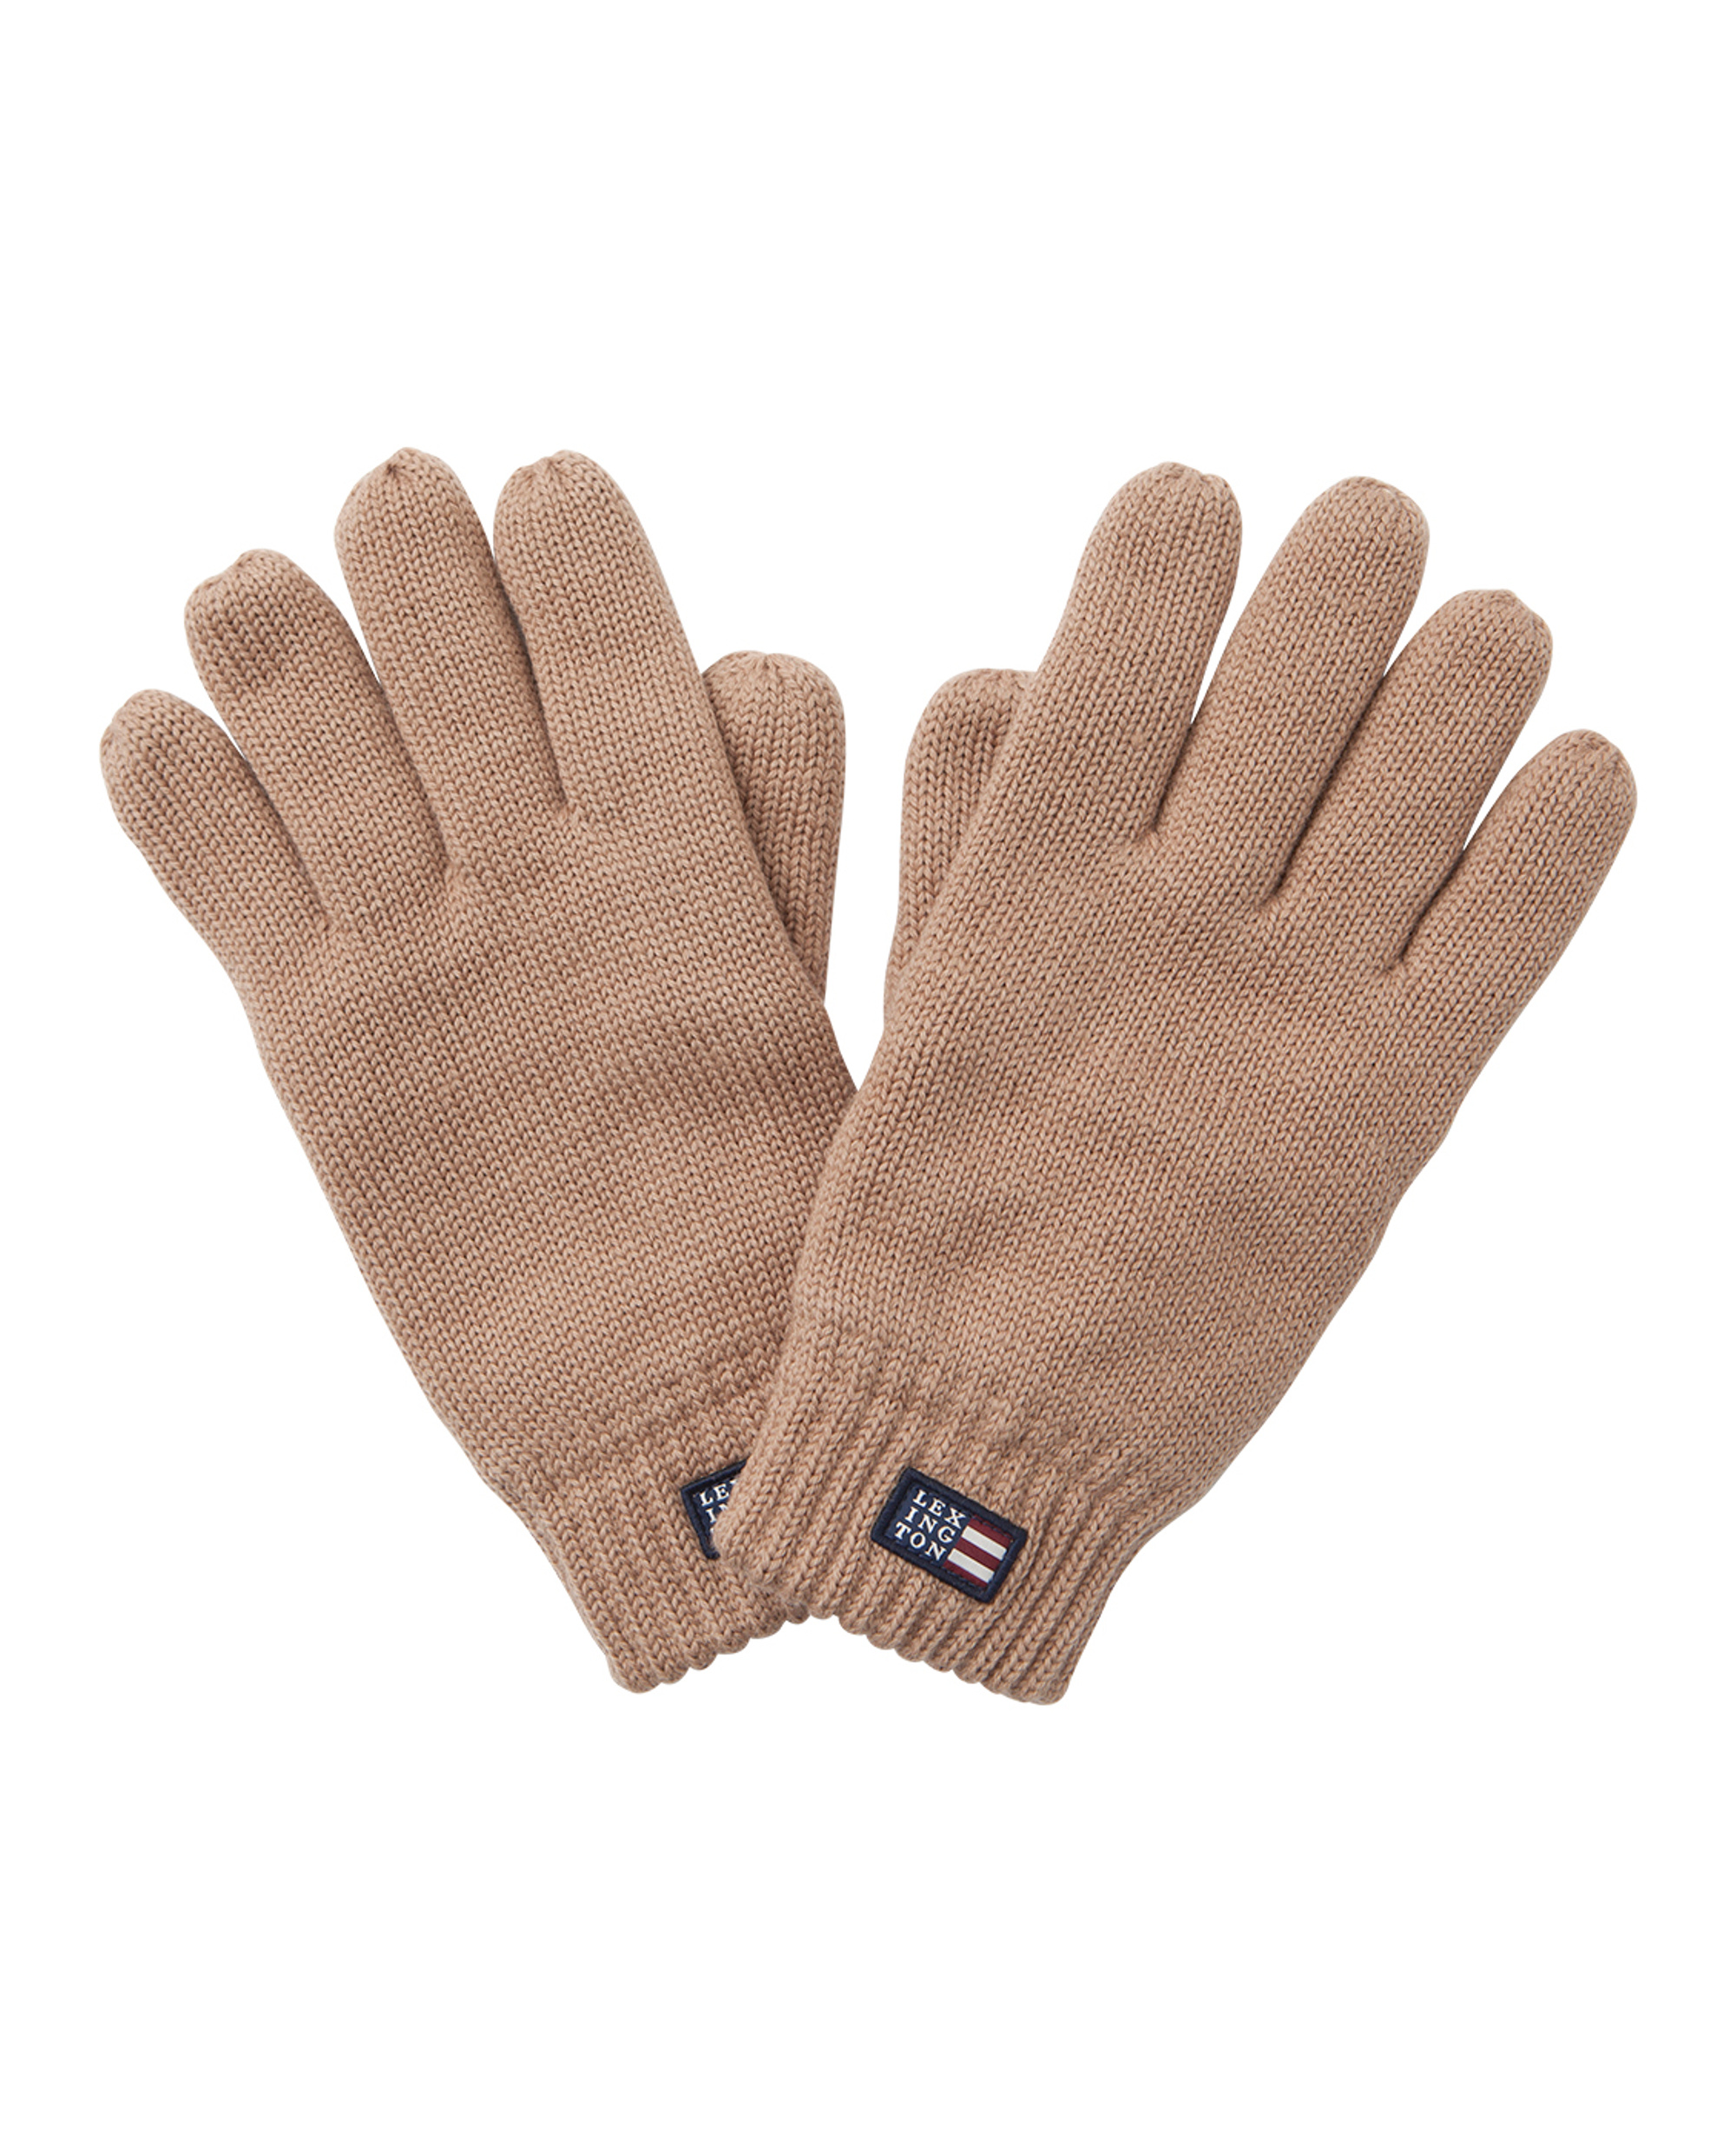 Connecticut Unisex Knitted Gloves, Warm Sand